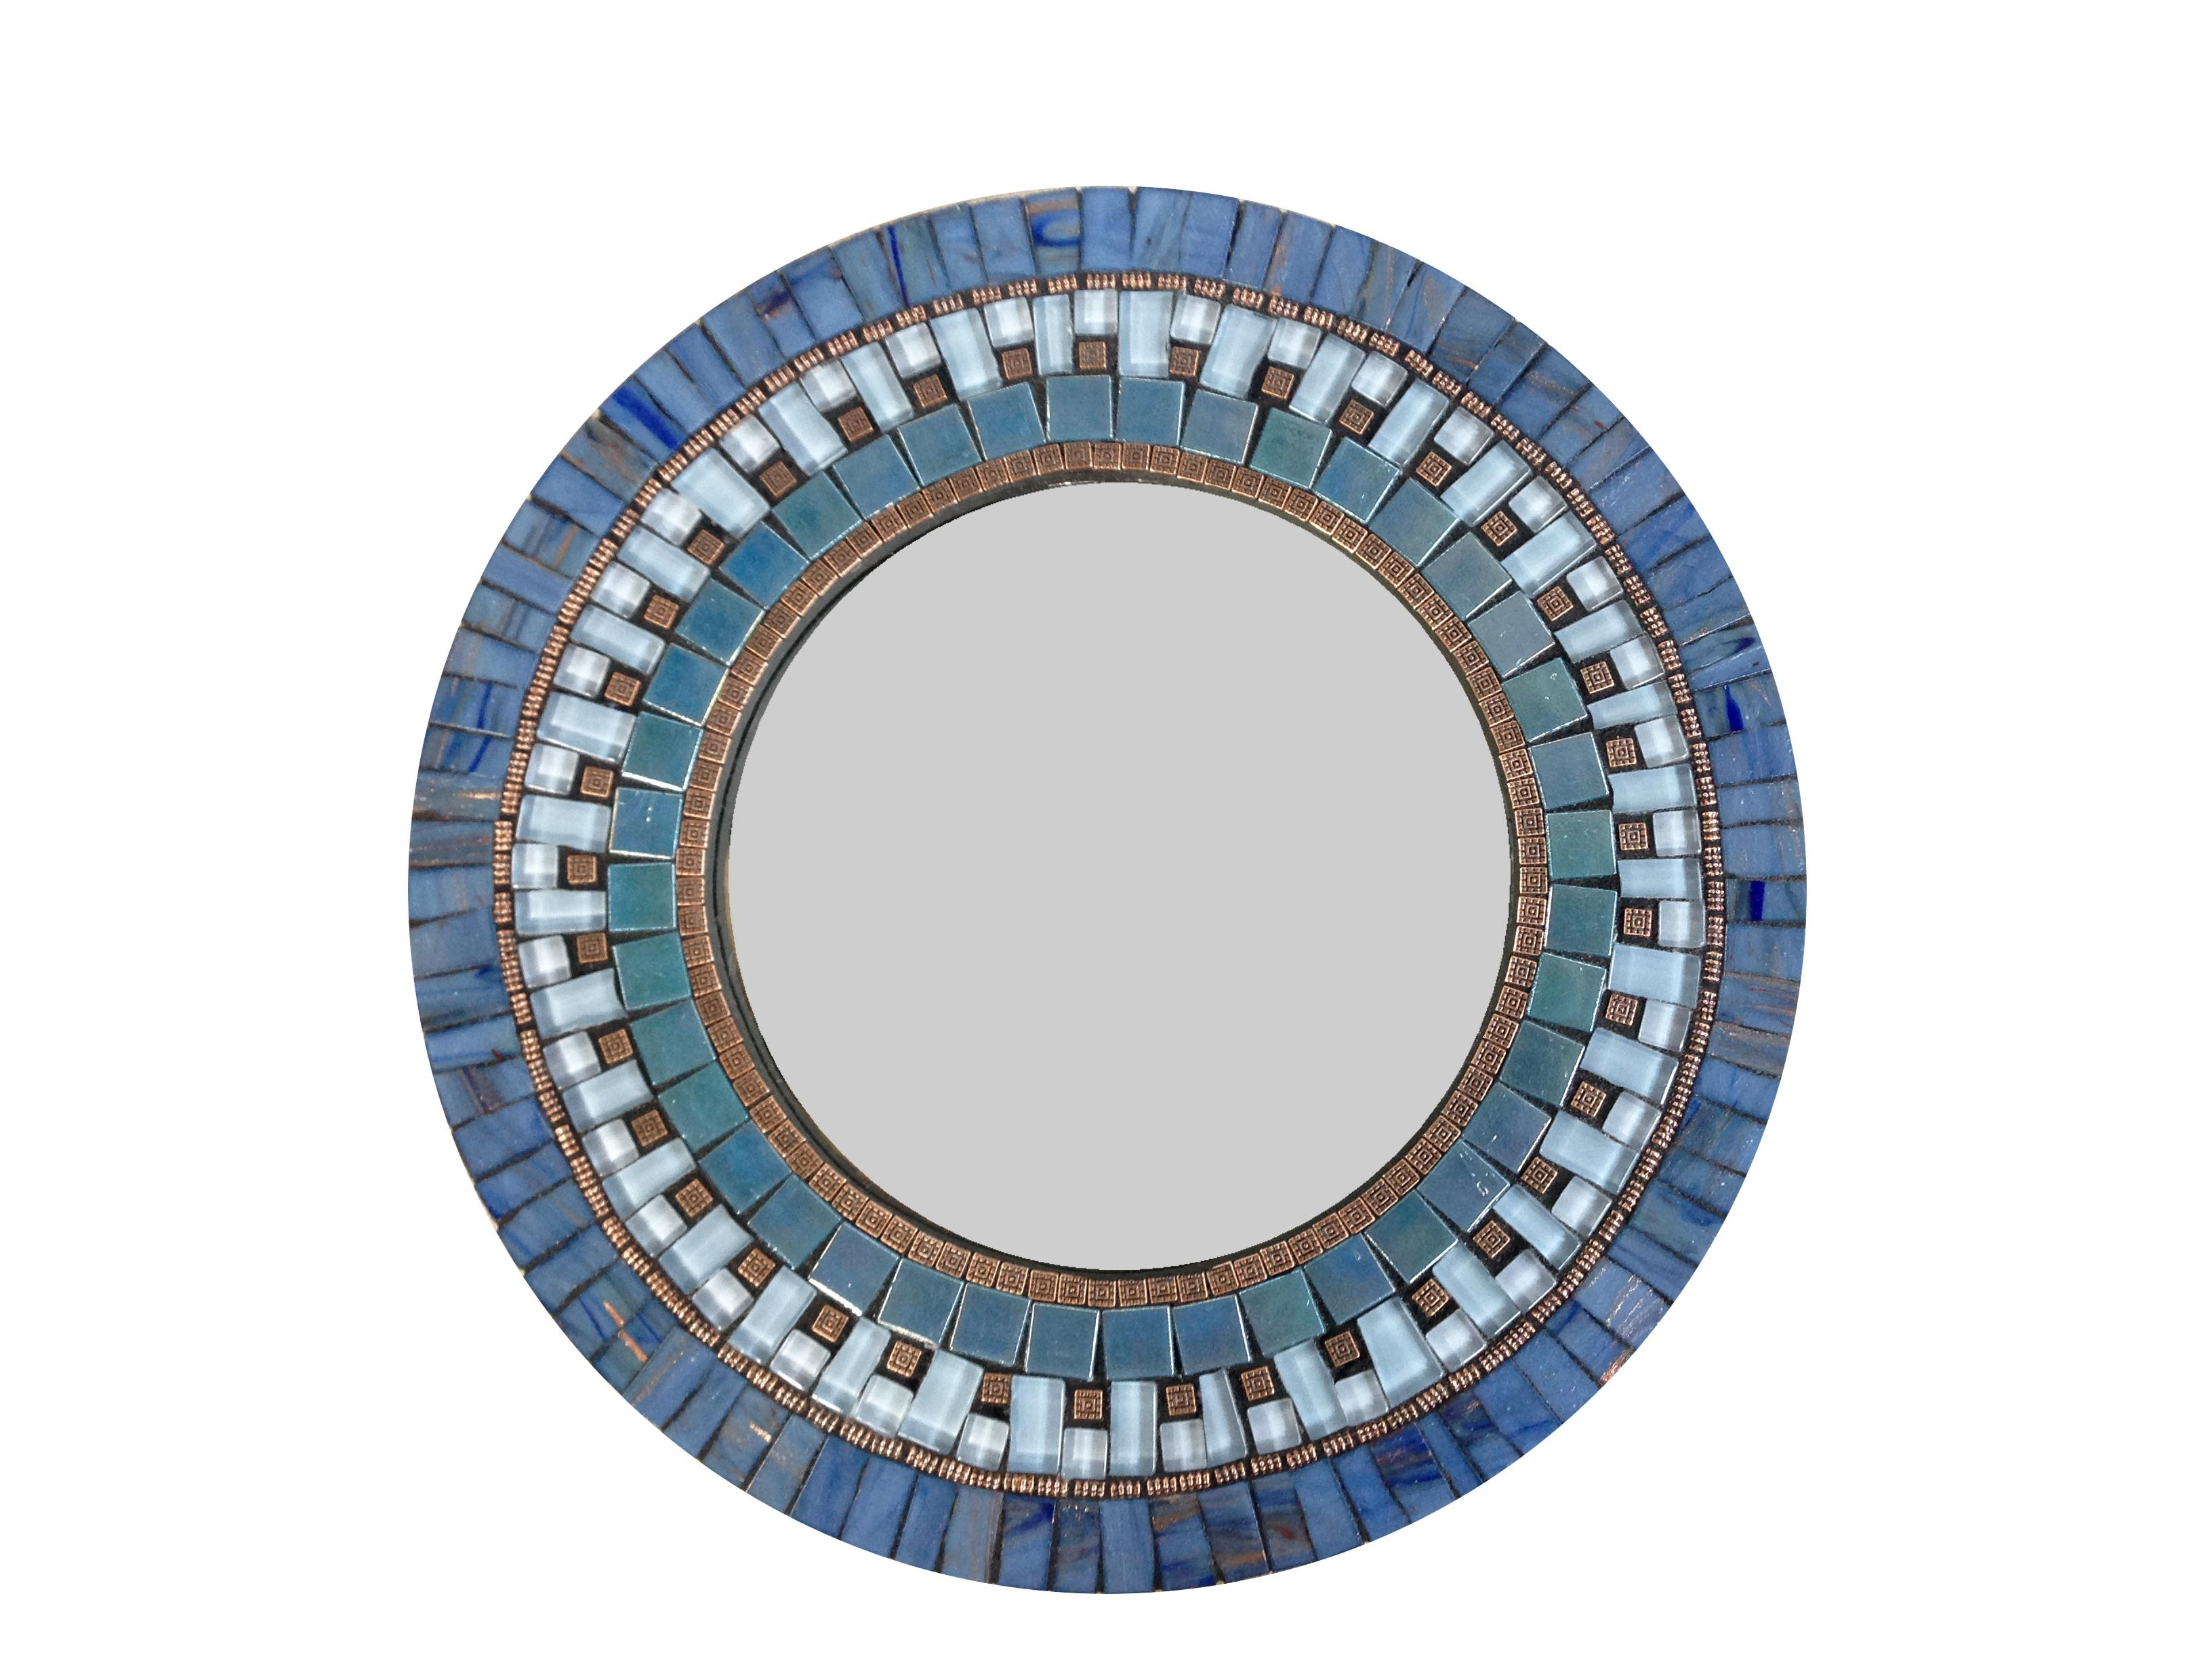 Living Room Redo Mosaic Mirrors Round Mirrors Fireplace Ideas Wall Within Round Mosaic Mirrors (Image 9 of 20)